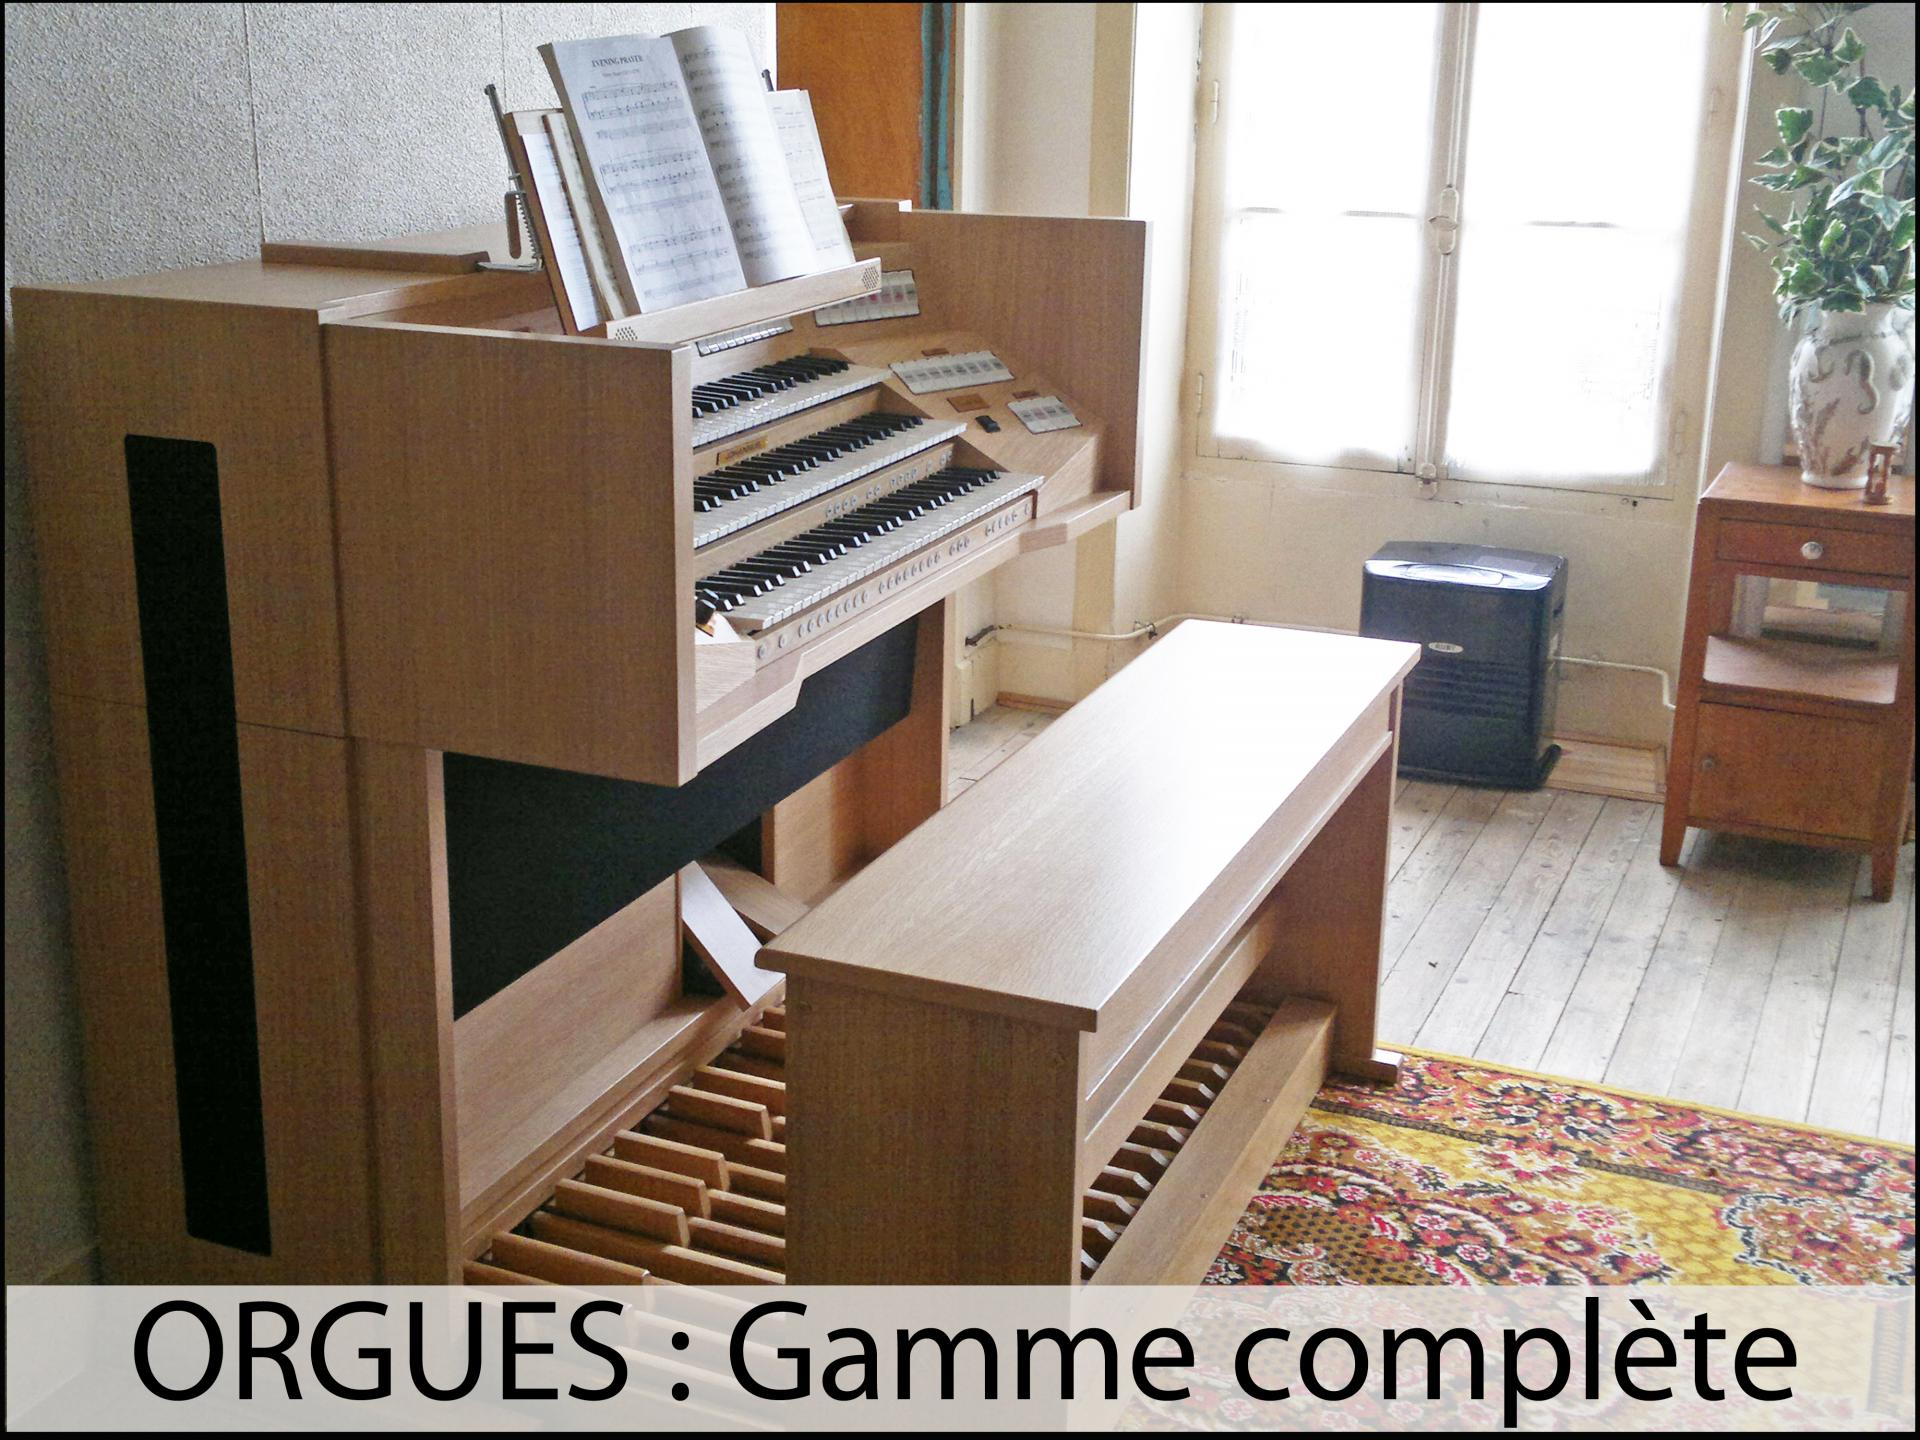 Carre gamme complete